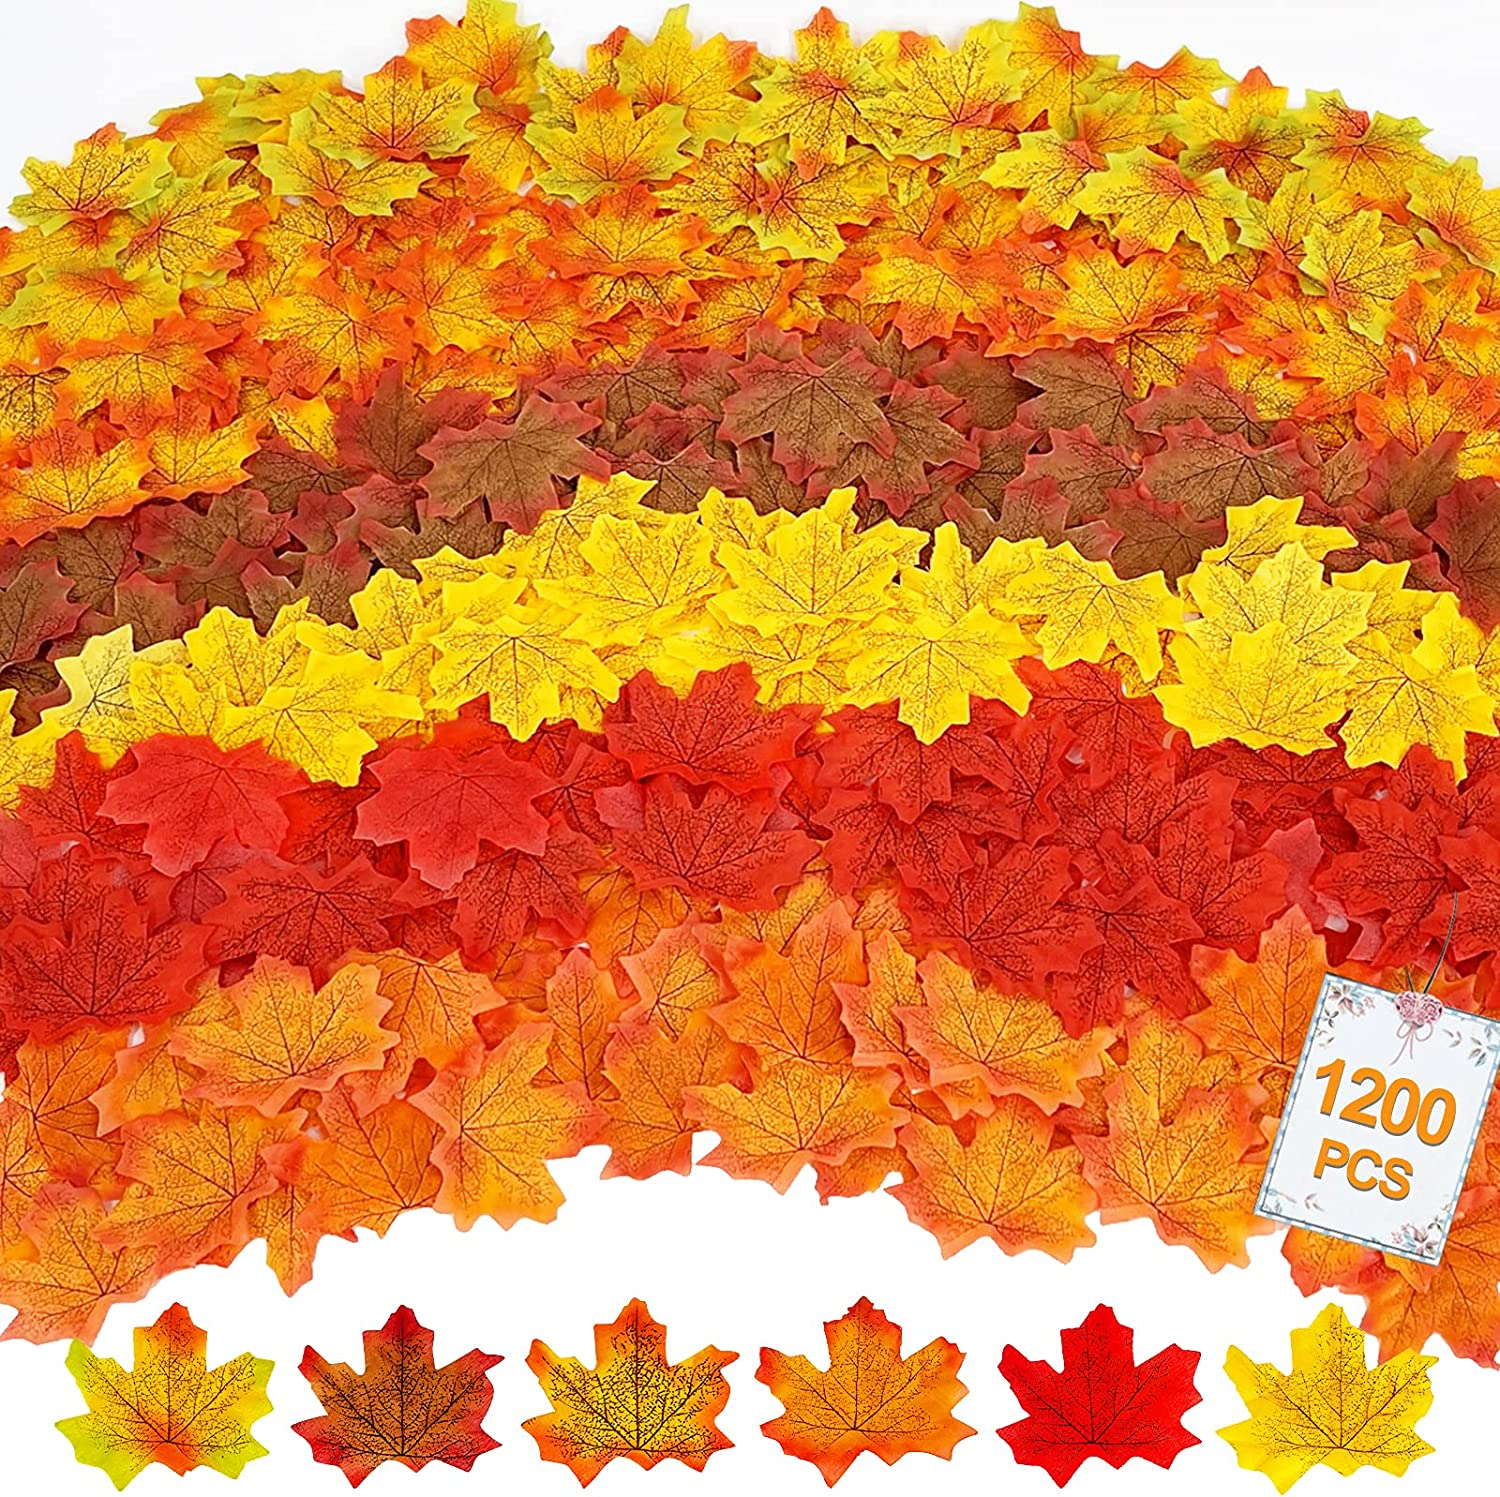 TURNMEON 1200 Pcs Fall Artificial Maple Leaves Decorations with 6 Mixed Colors Fake Faux Autumn Leaf for Festival Thanksgiving Fall Harvest Home Decorations Indoor Outdoor Wedding Party Table Decor